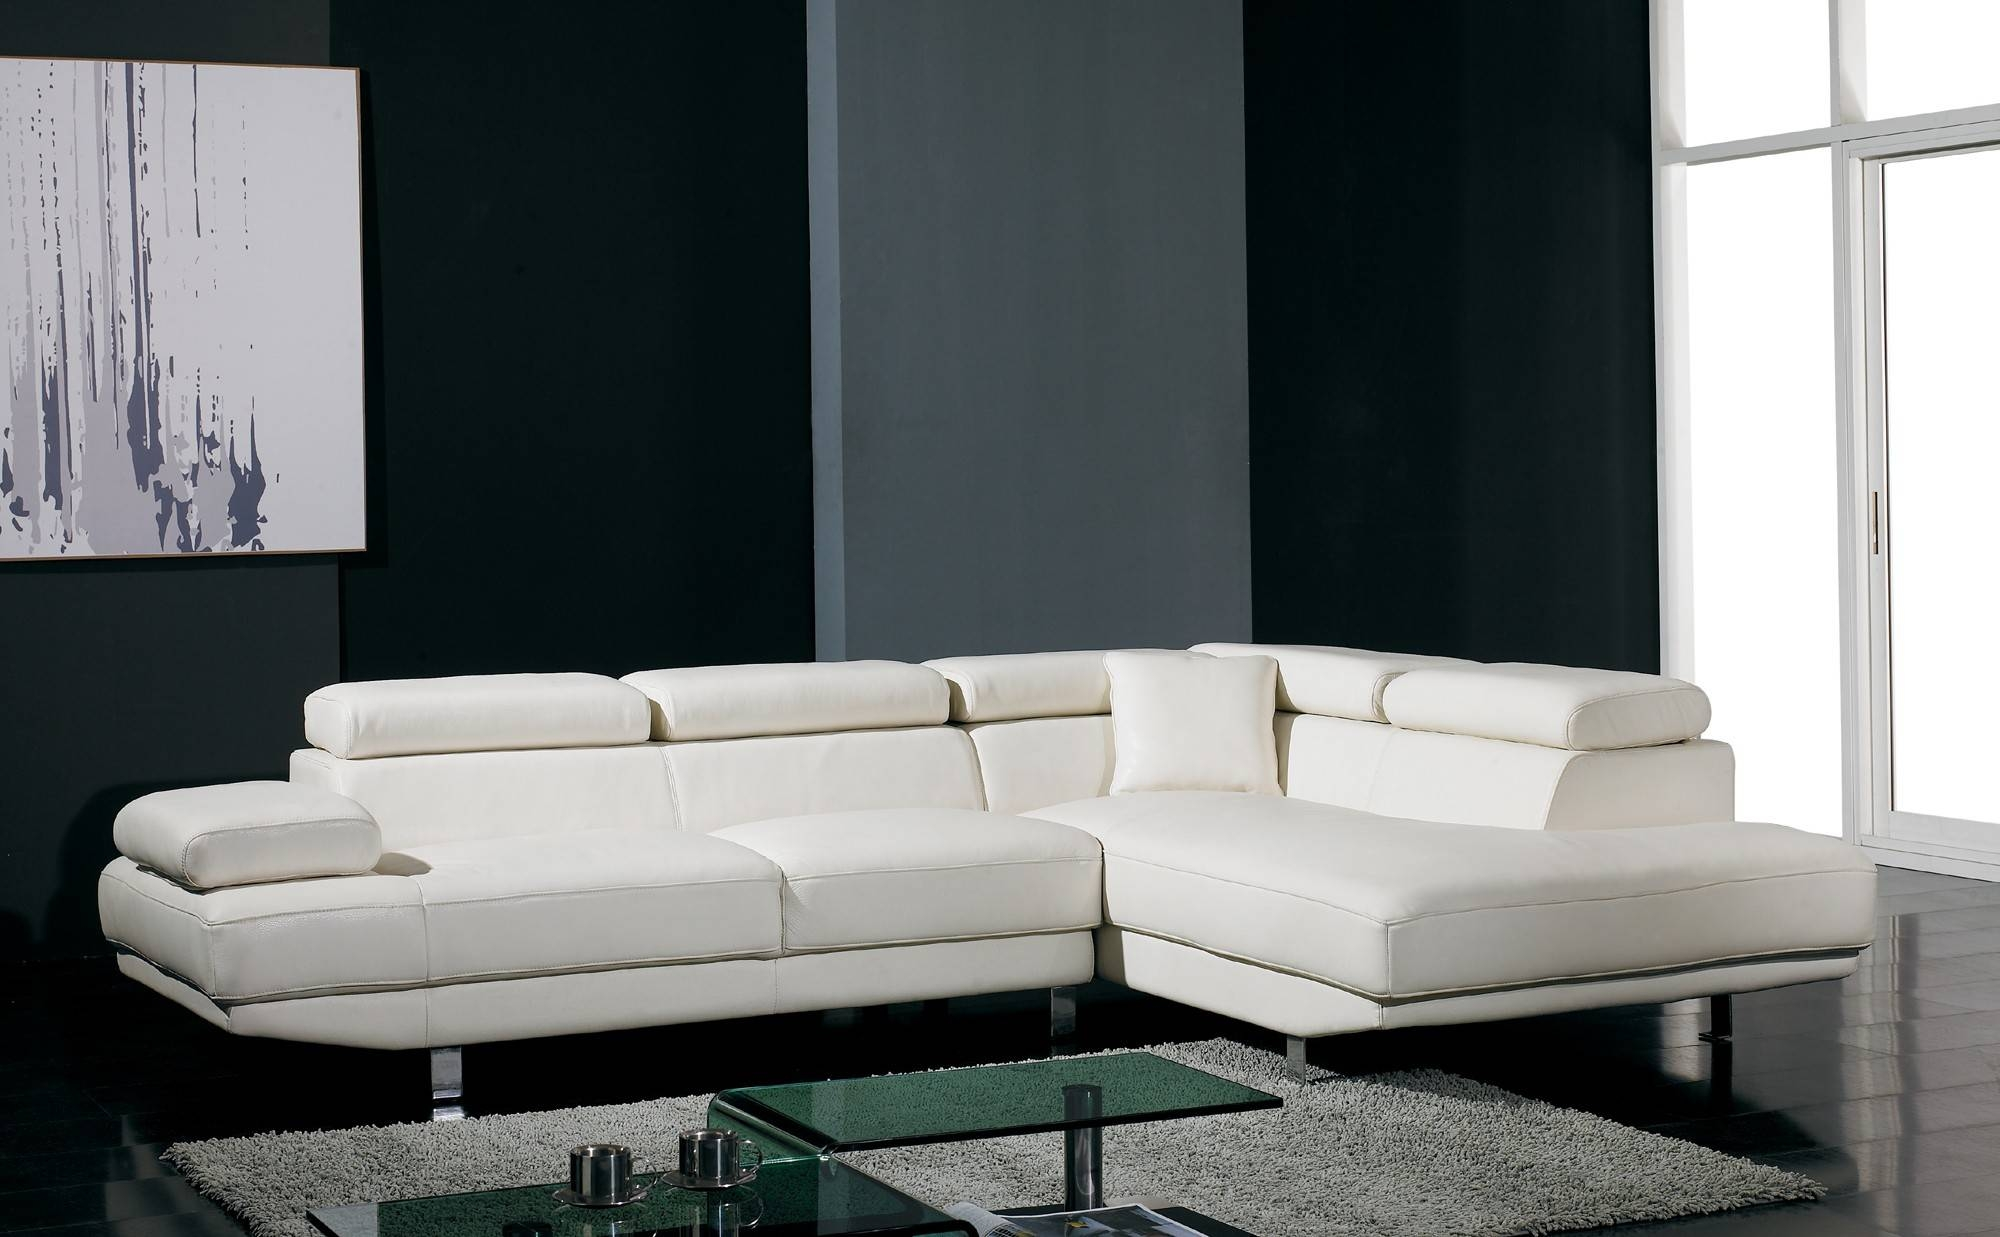 Sofas Center : White Sectional Sofa Amazing Picture Inspirations throughout White Sectional Sofa For Sale (Image 23 of 30)